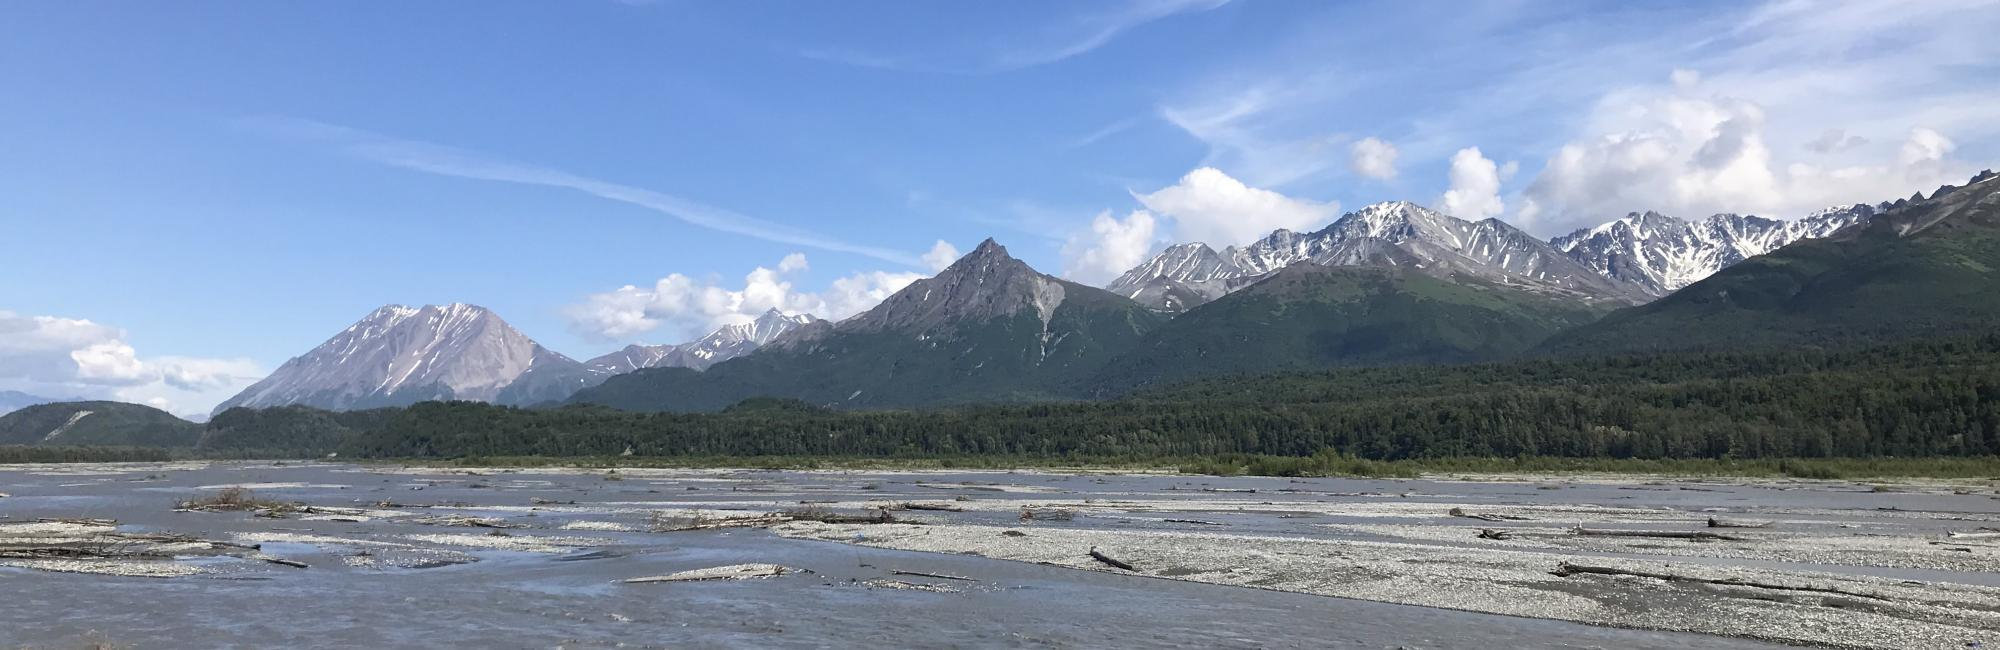 The Matanuska River near Chickaloon, Alaska